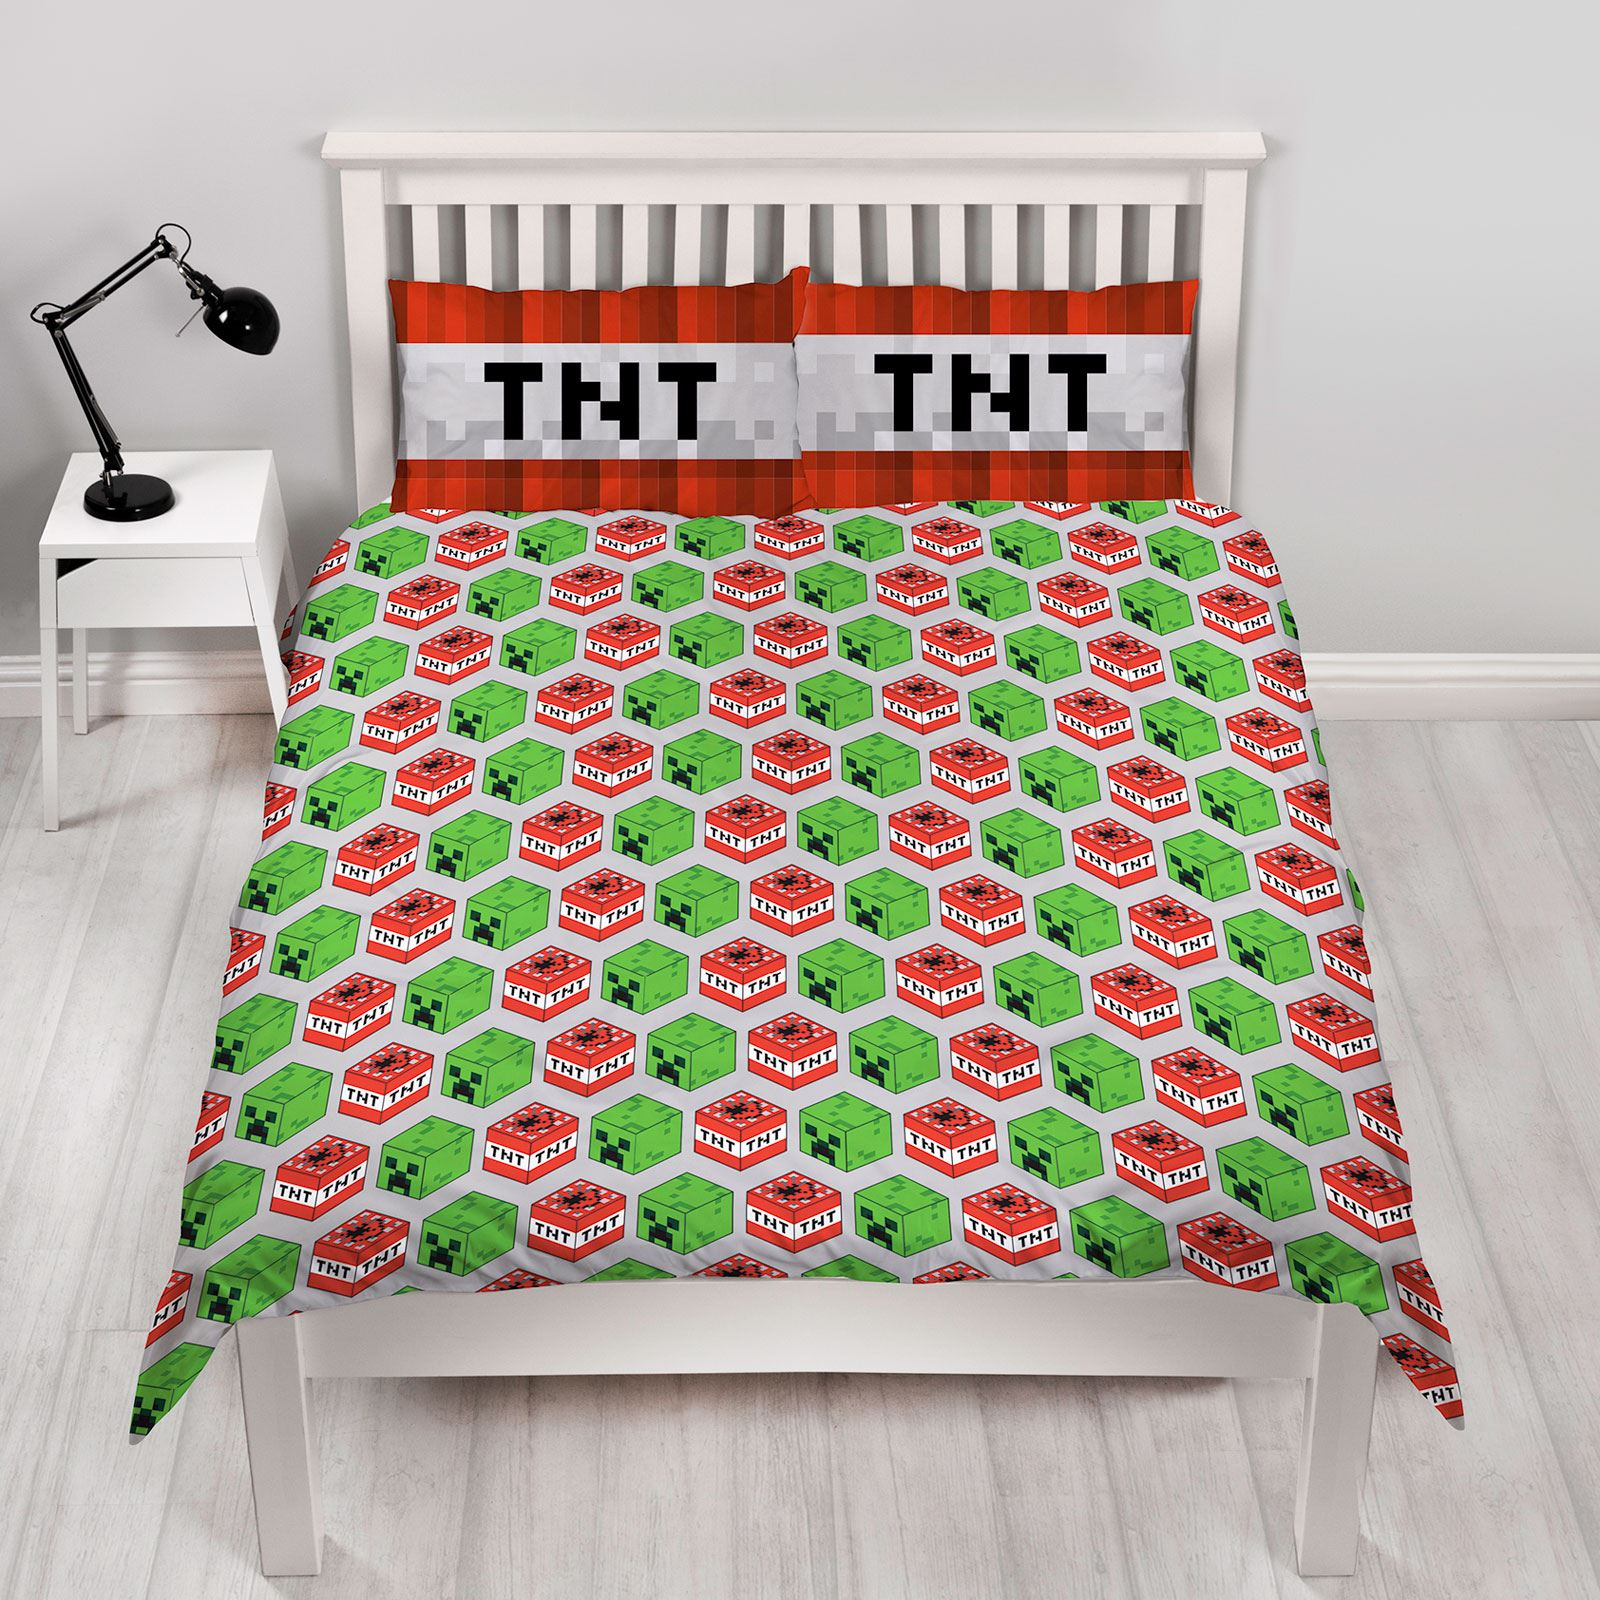 Minecraft Gaming Fan Duvet Cover Sets Cushions Blankets Towels Sold Separately Ebay